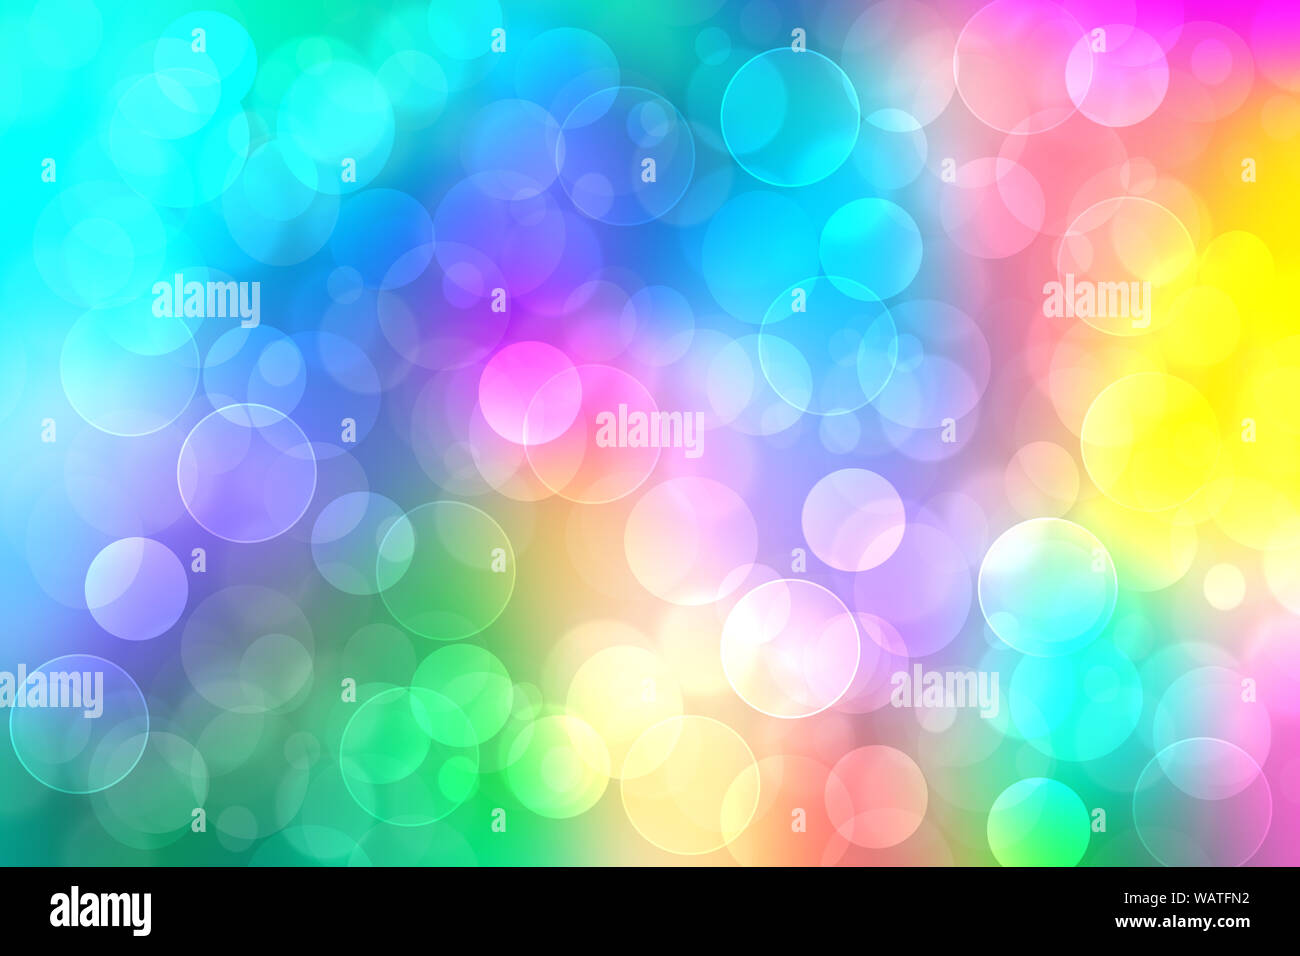 Rainbow Background Abstract Fresh Delicate Pastel Vivid Colorful Fantasy Rainbow Background Texture With Defocused Bokeh Lights Beautiful Light Text Stock Photo Alamy